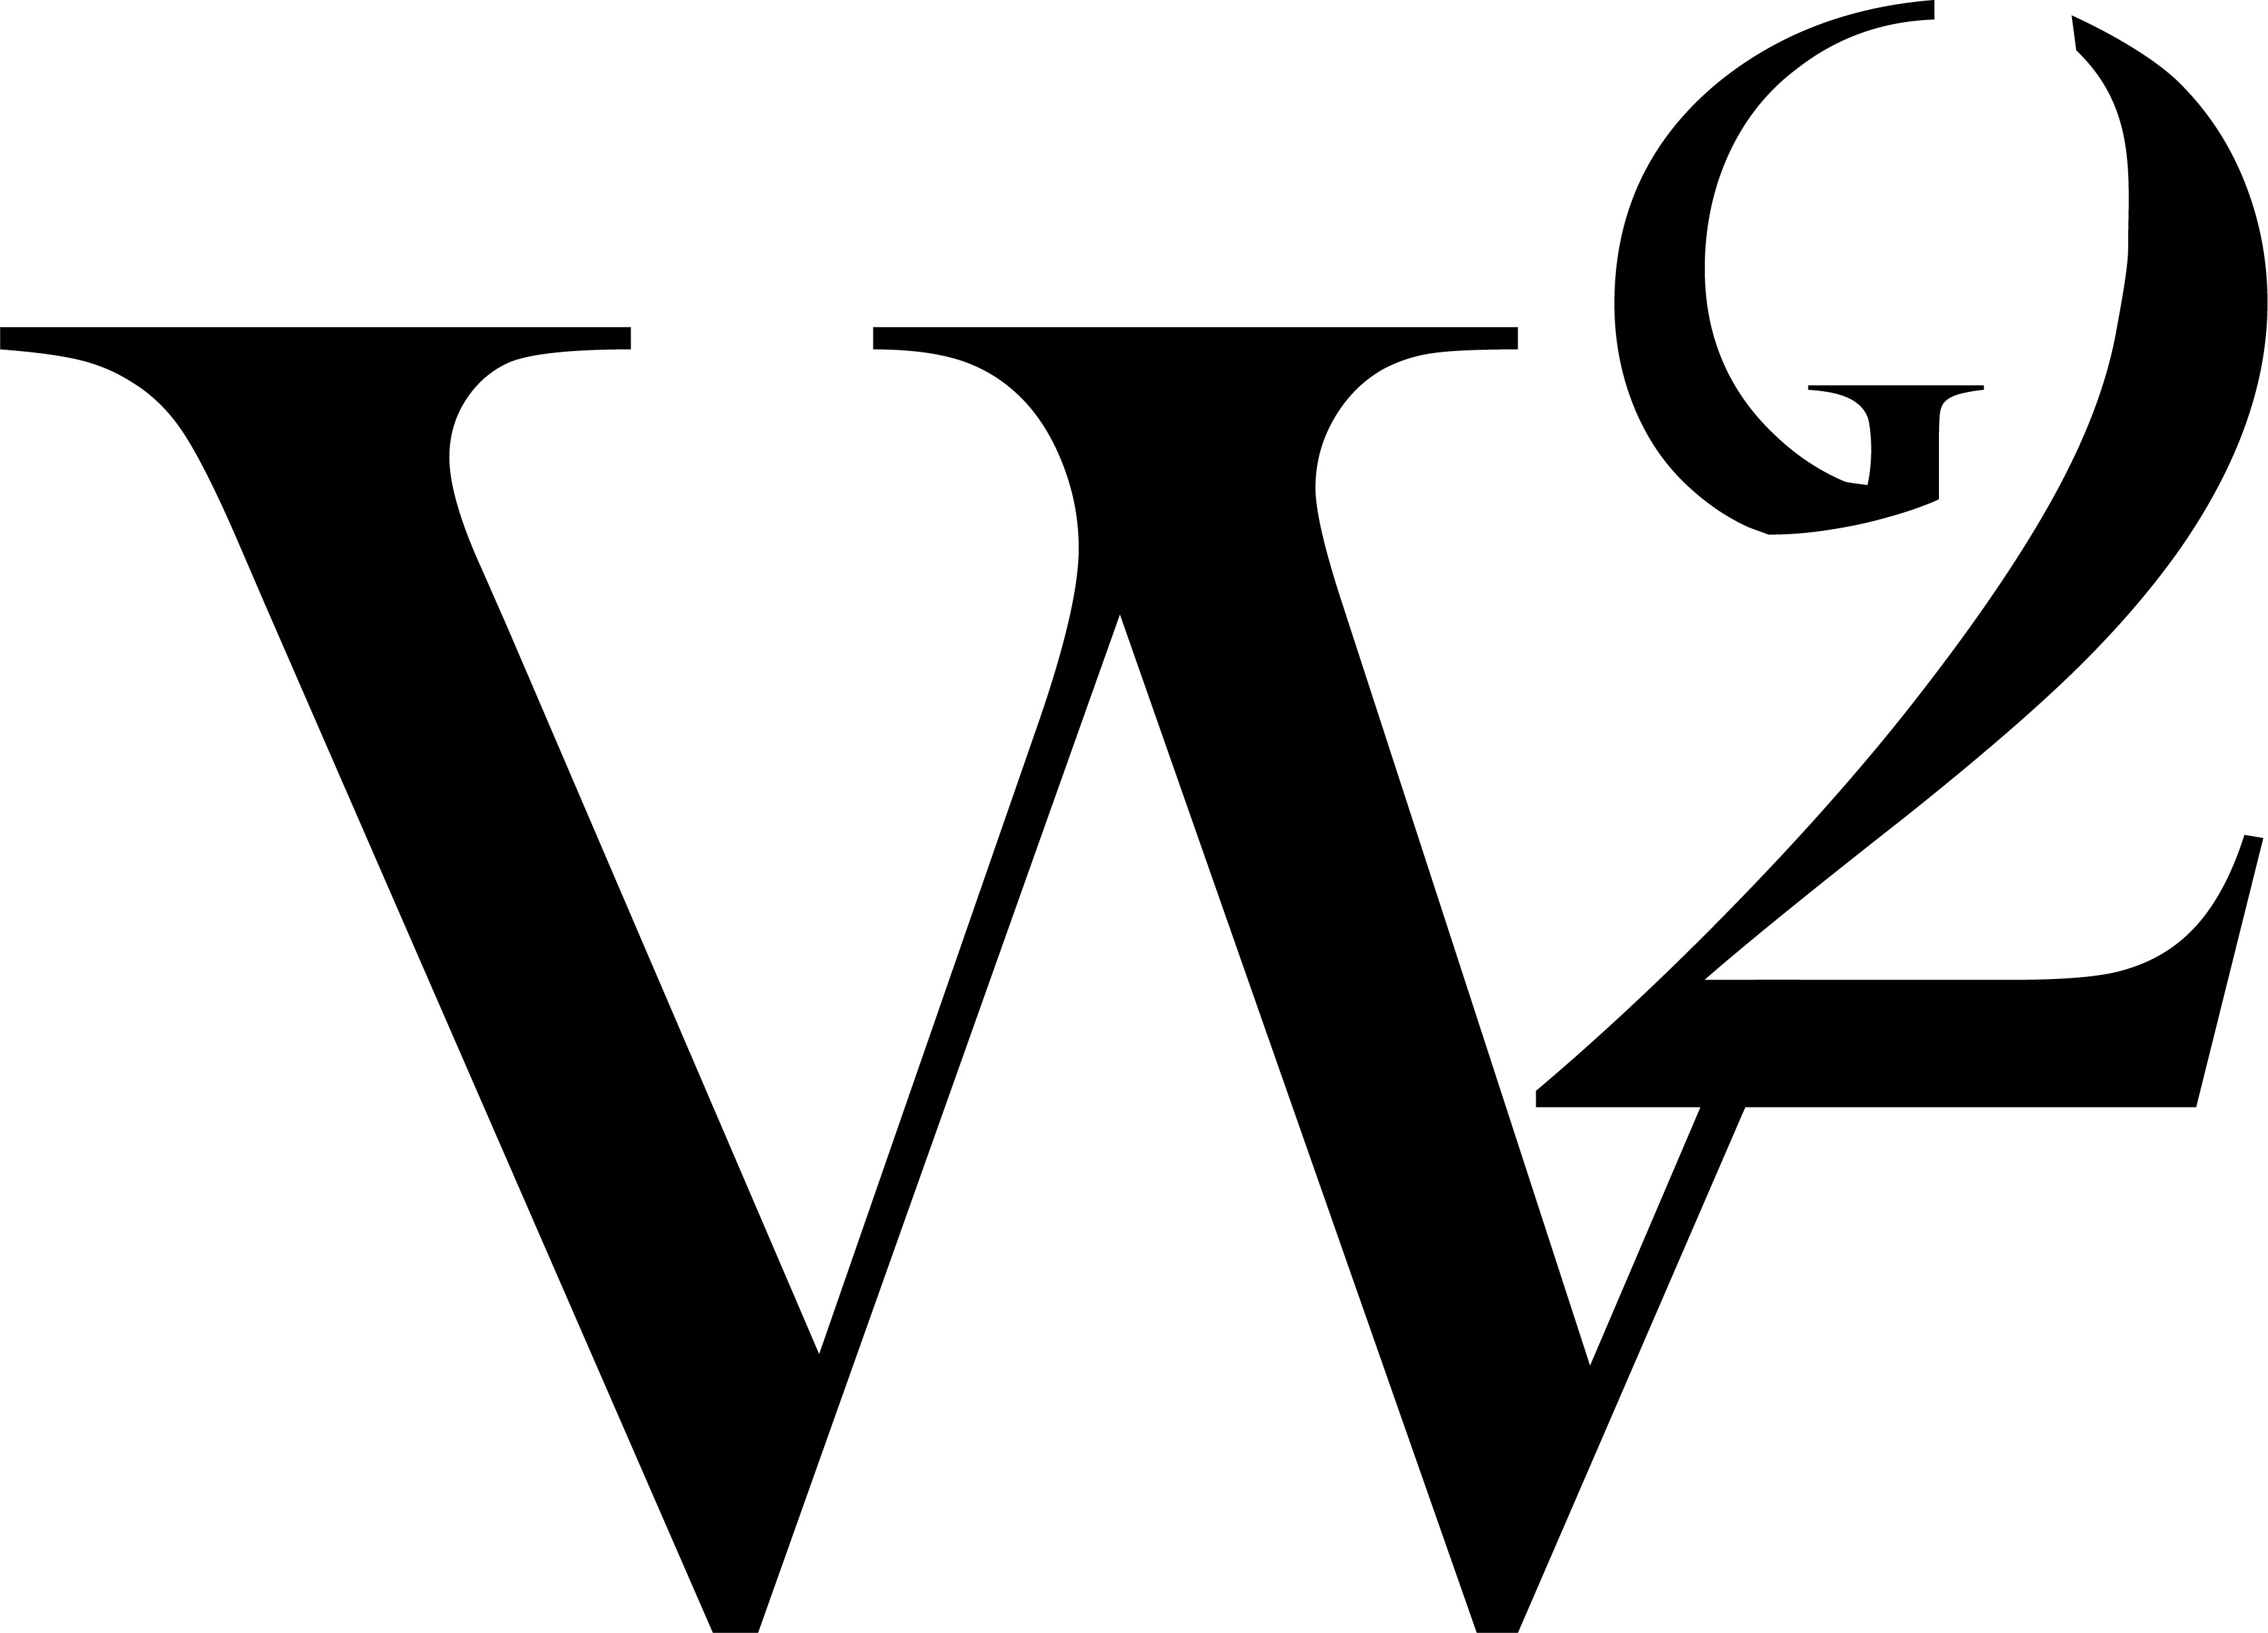 Way2Grow (W2G) Biopharma Company Enters Cannabis Productivity and Announces Plans to Seek Health Canada Approval for Magic Mushroom (Psilocybin and Psilocin) Dealer and Research Licencing